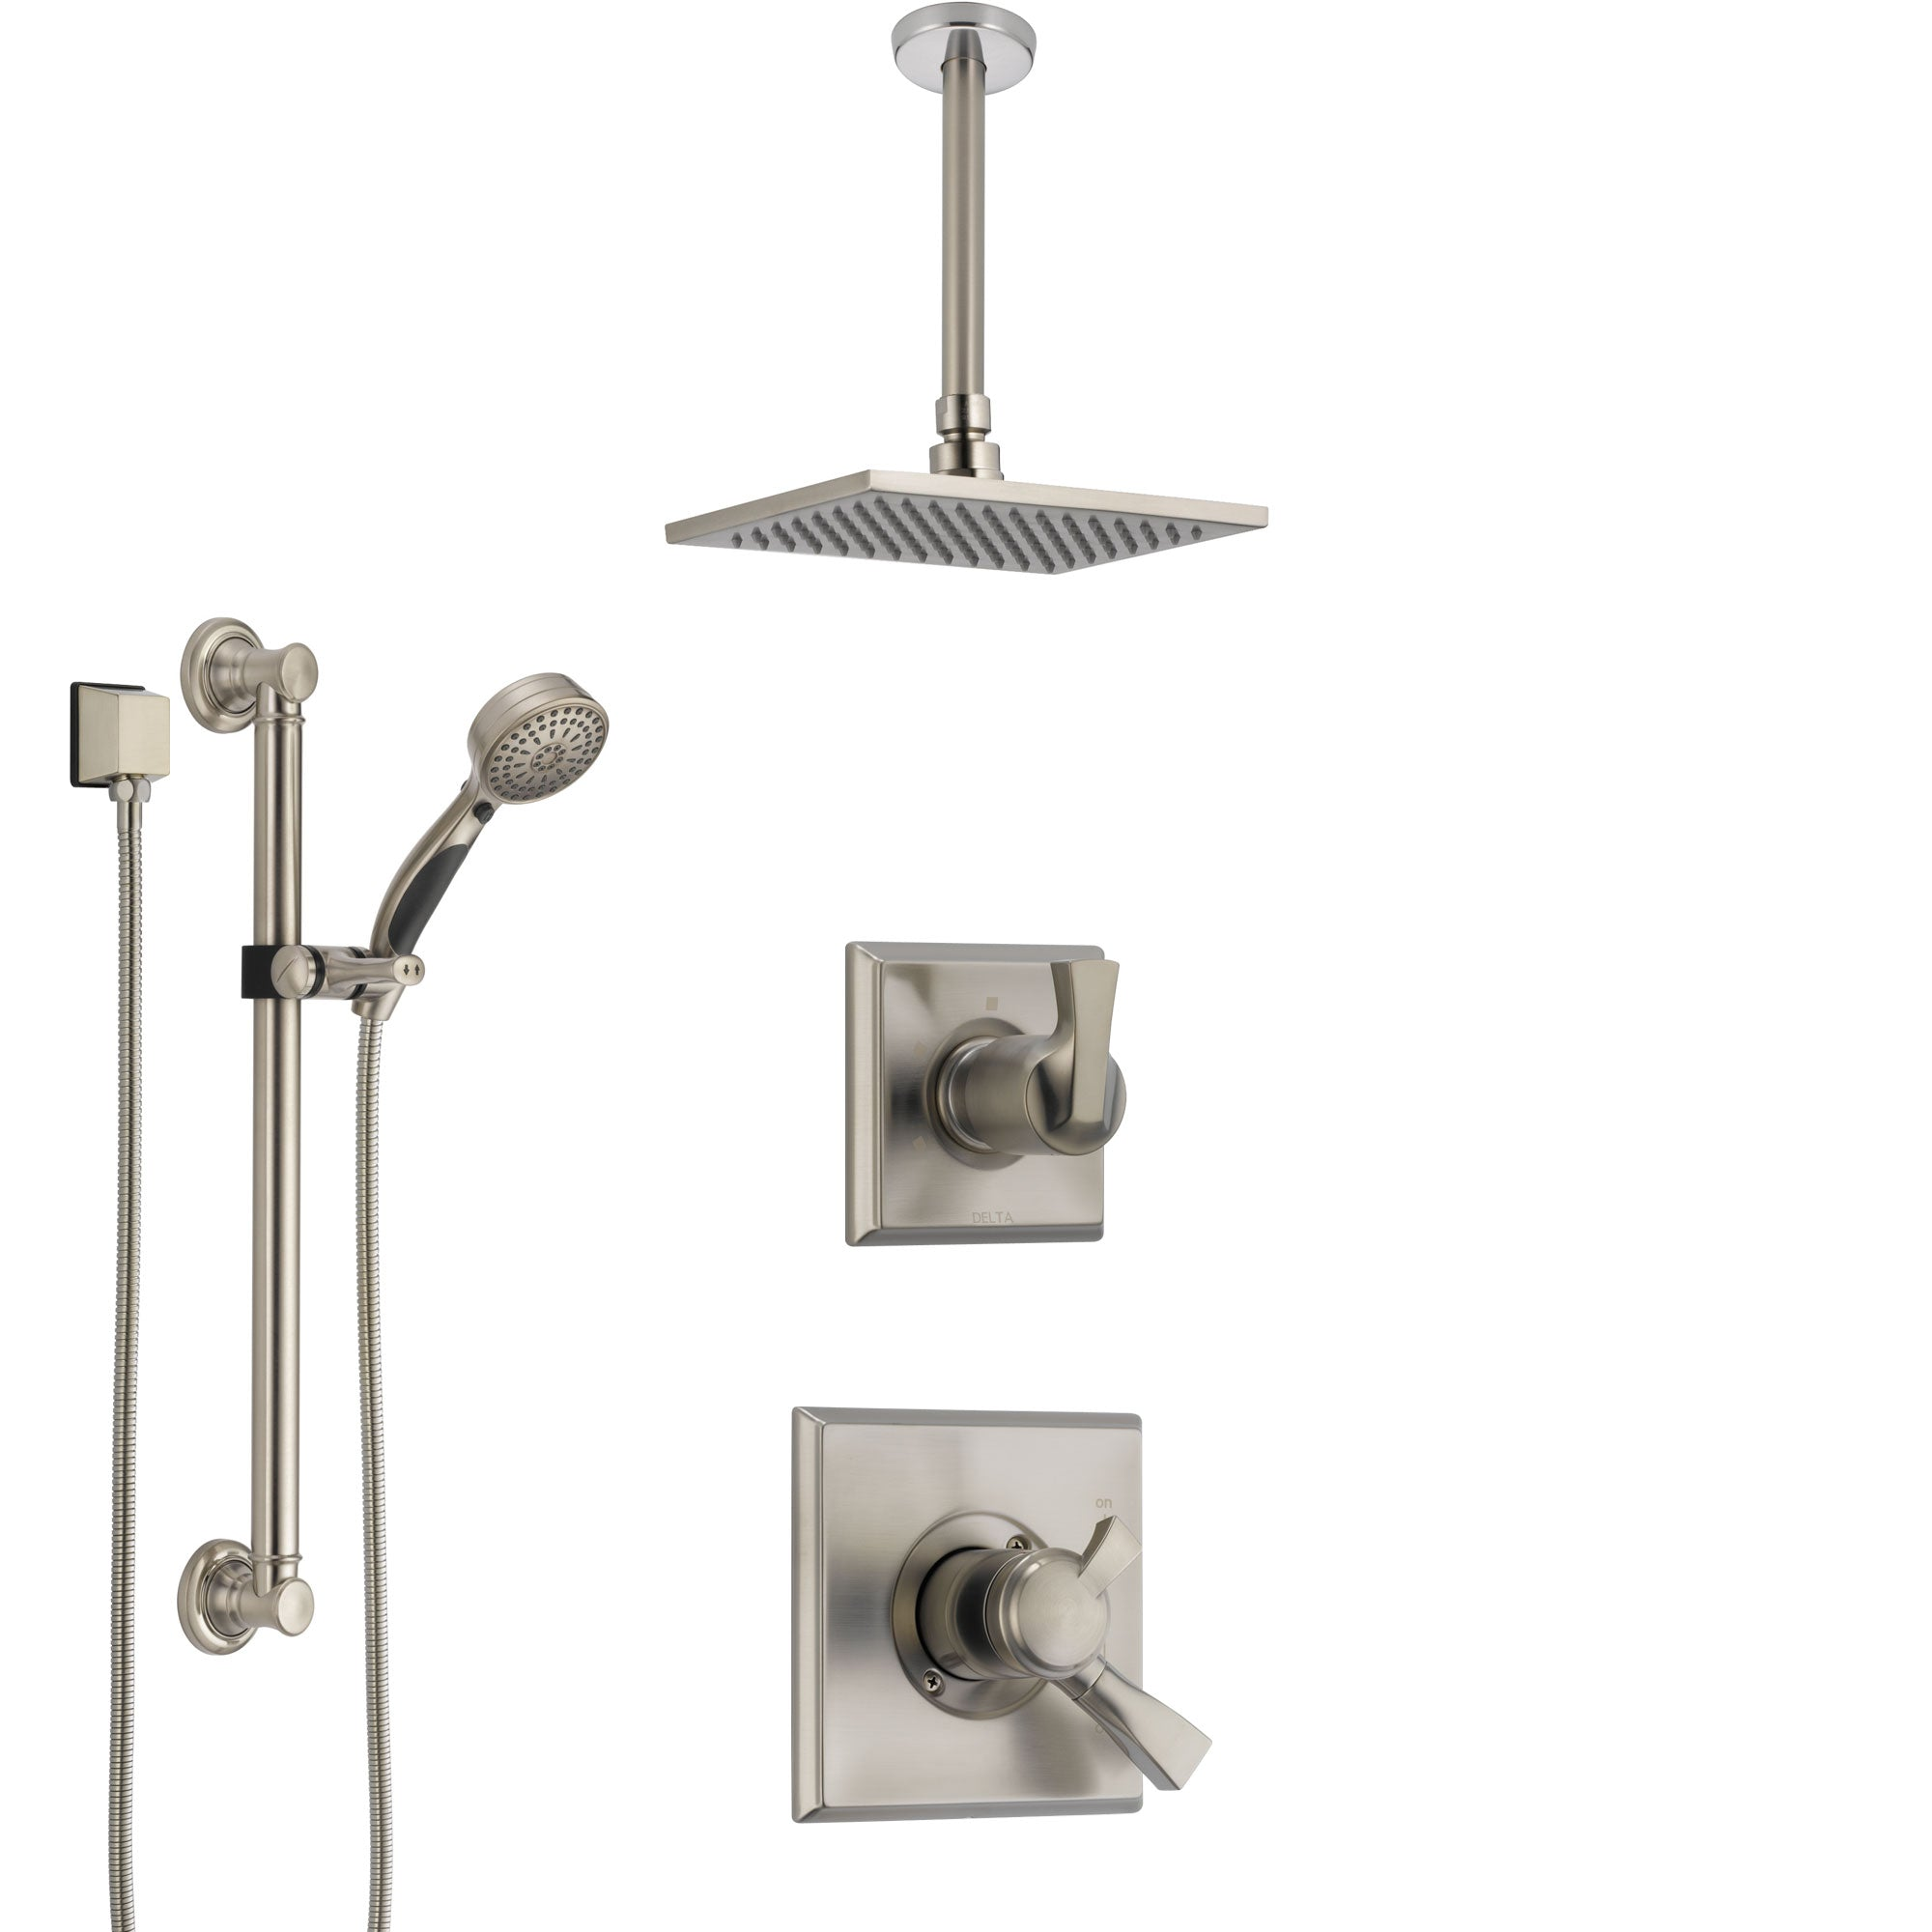 Delta Dryden Dual Control Handle Stainless Steel Finish Shower System, Diverter, Ceiling Mount Showerhead, and Hand Shower with Grab Bar SS1751SS2